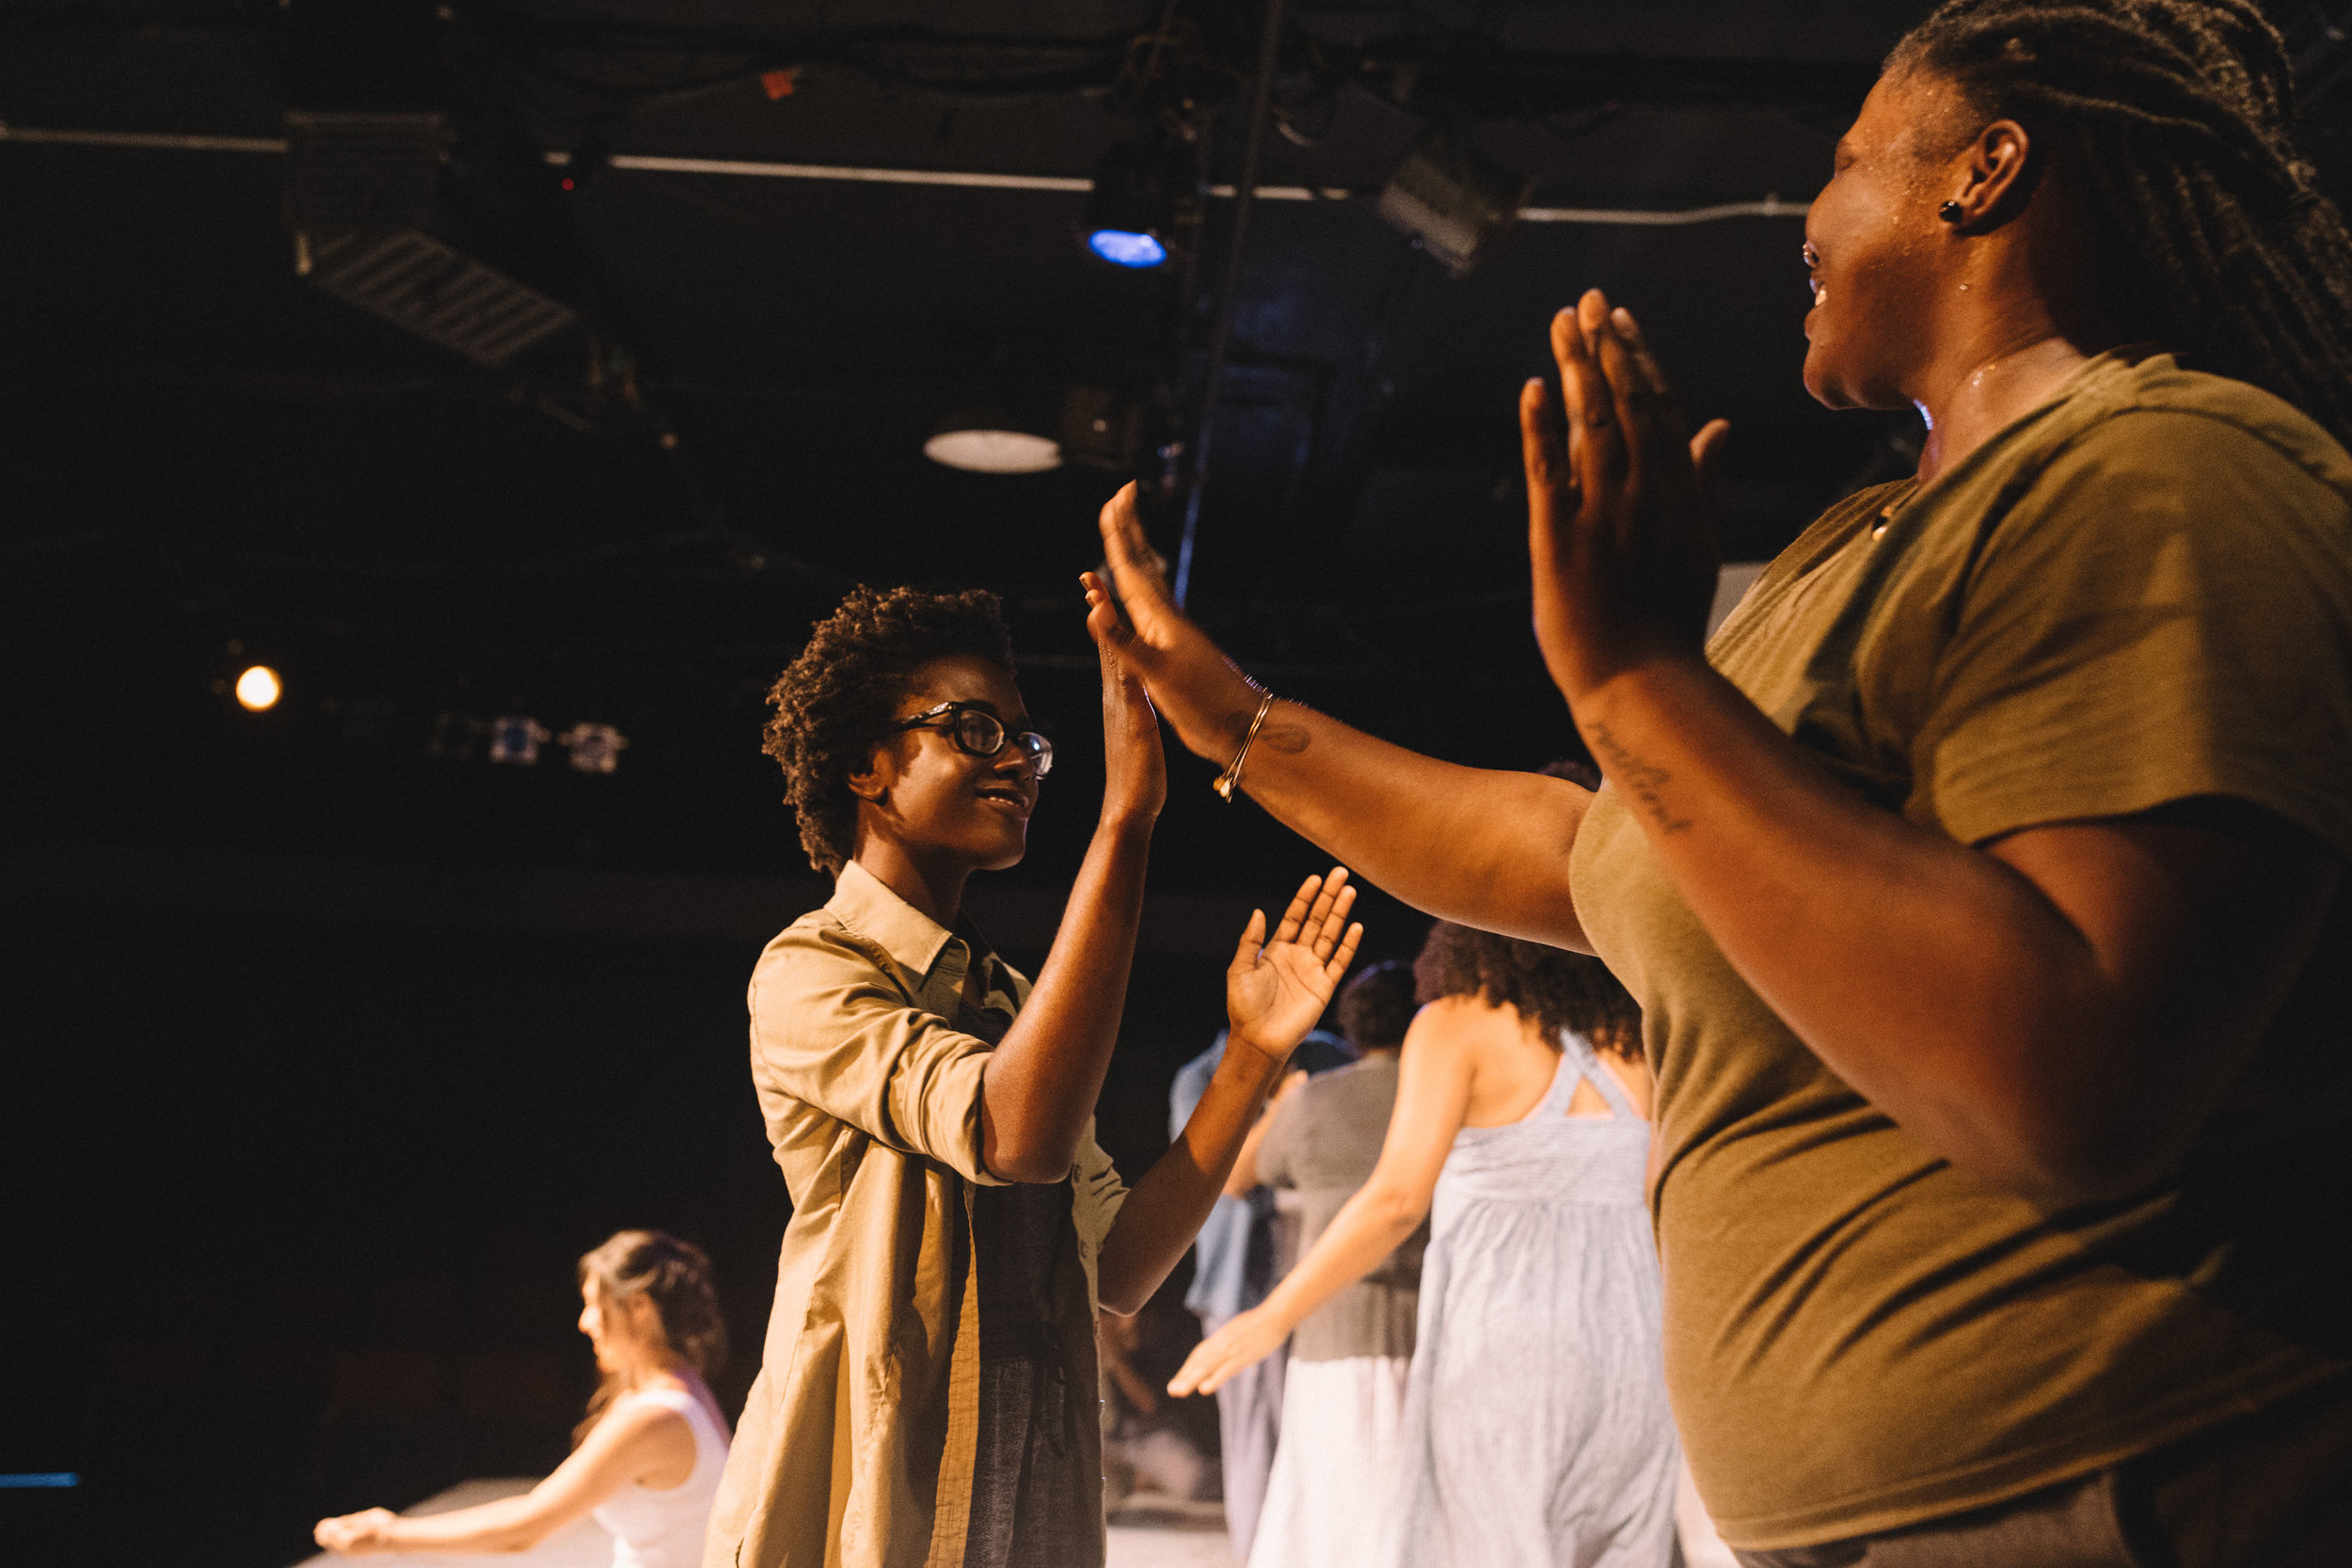 """Pictured : Esther Ajayi & Rolanda Bell in BATCO's production of """"I, Too, Sing America"""" @ Brava Theatre Feb 14 - 24; photo: Lorenz Angelo Gonzales"""